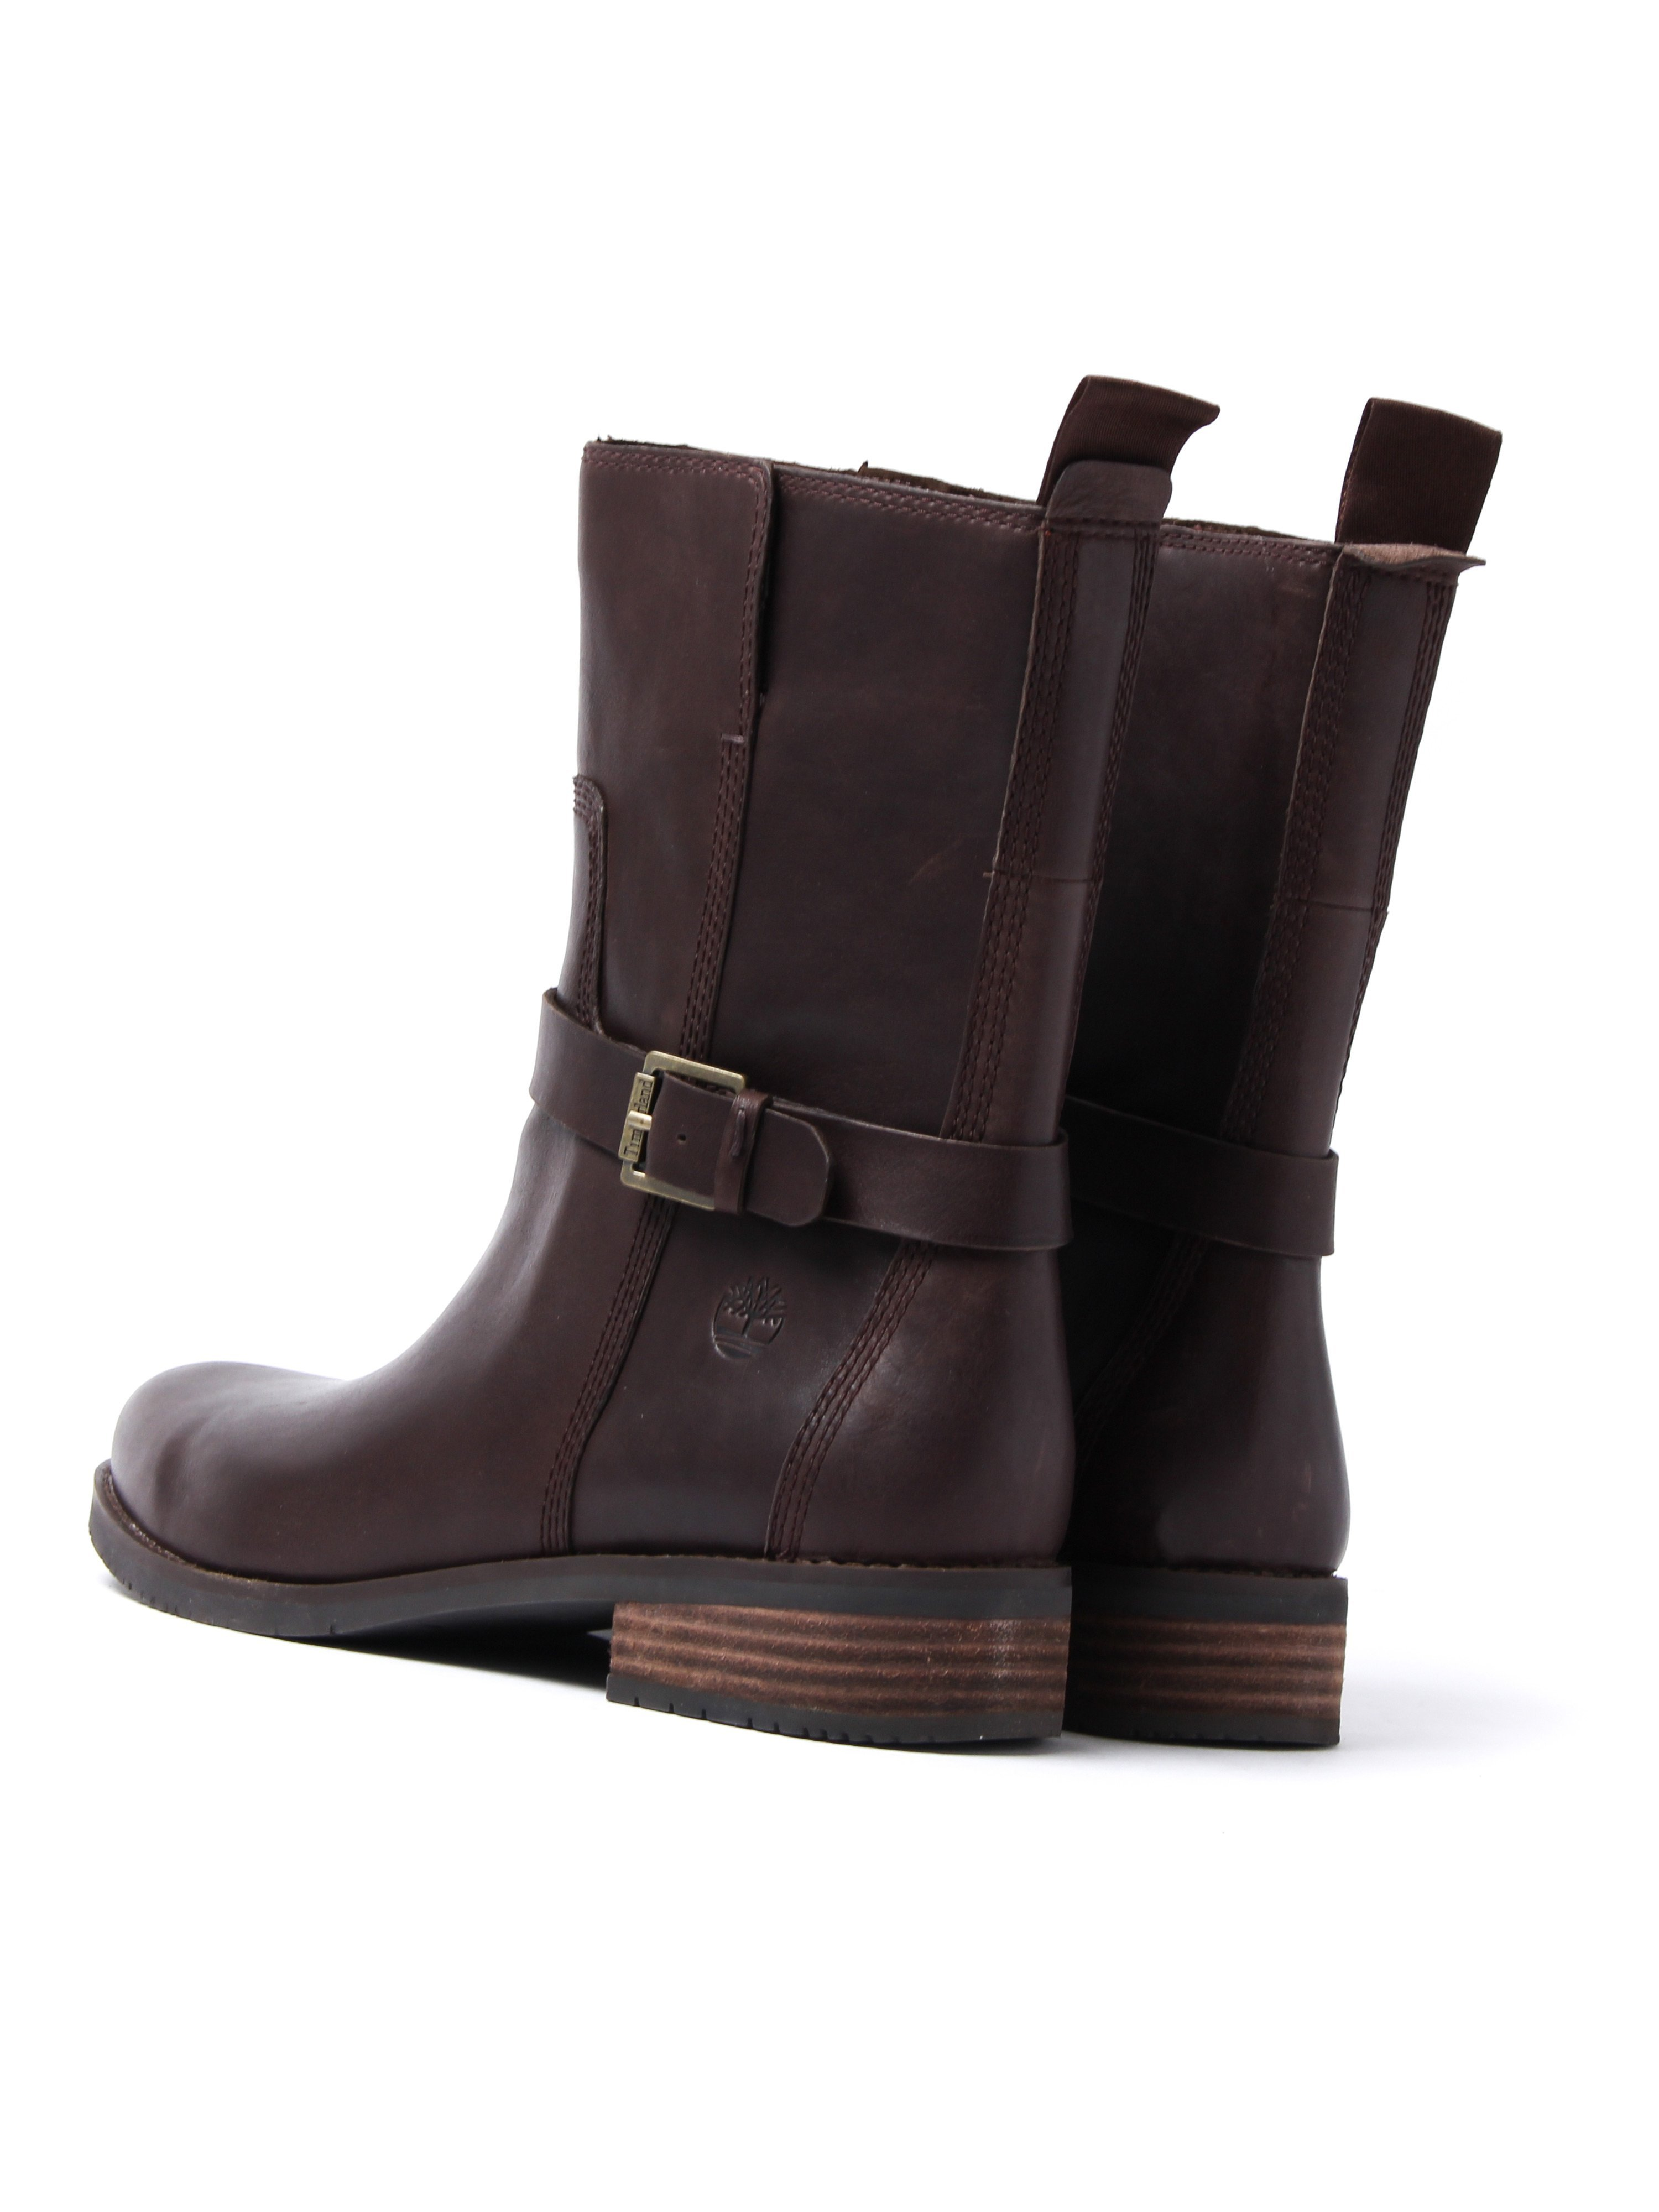 Timberland Women's Venice Park Biker Boots – Brown Leather